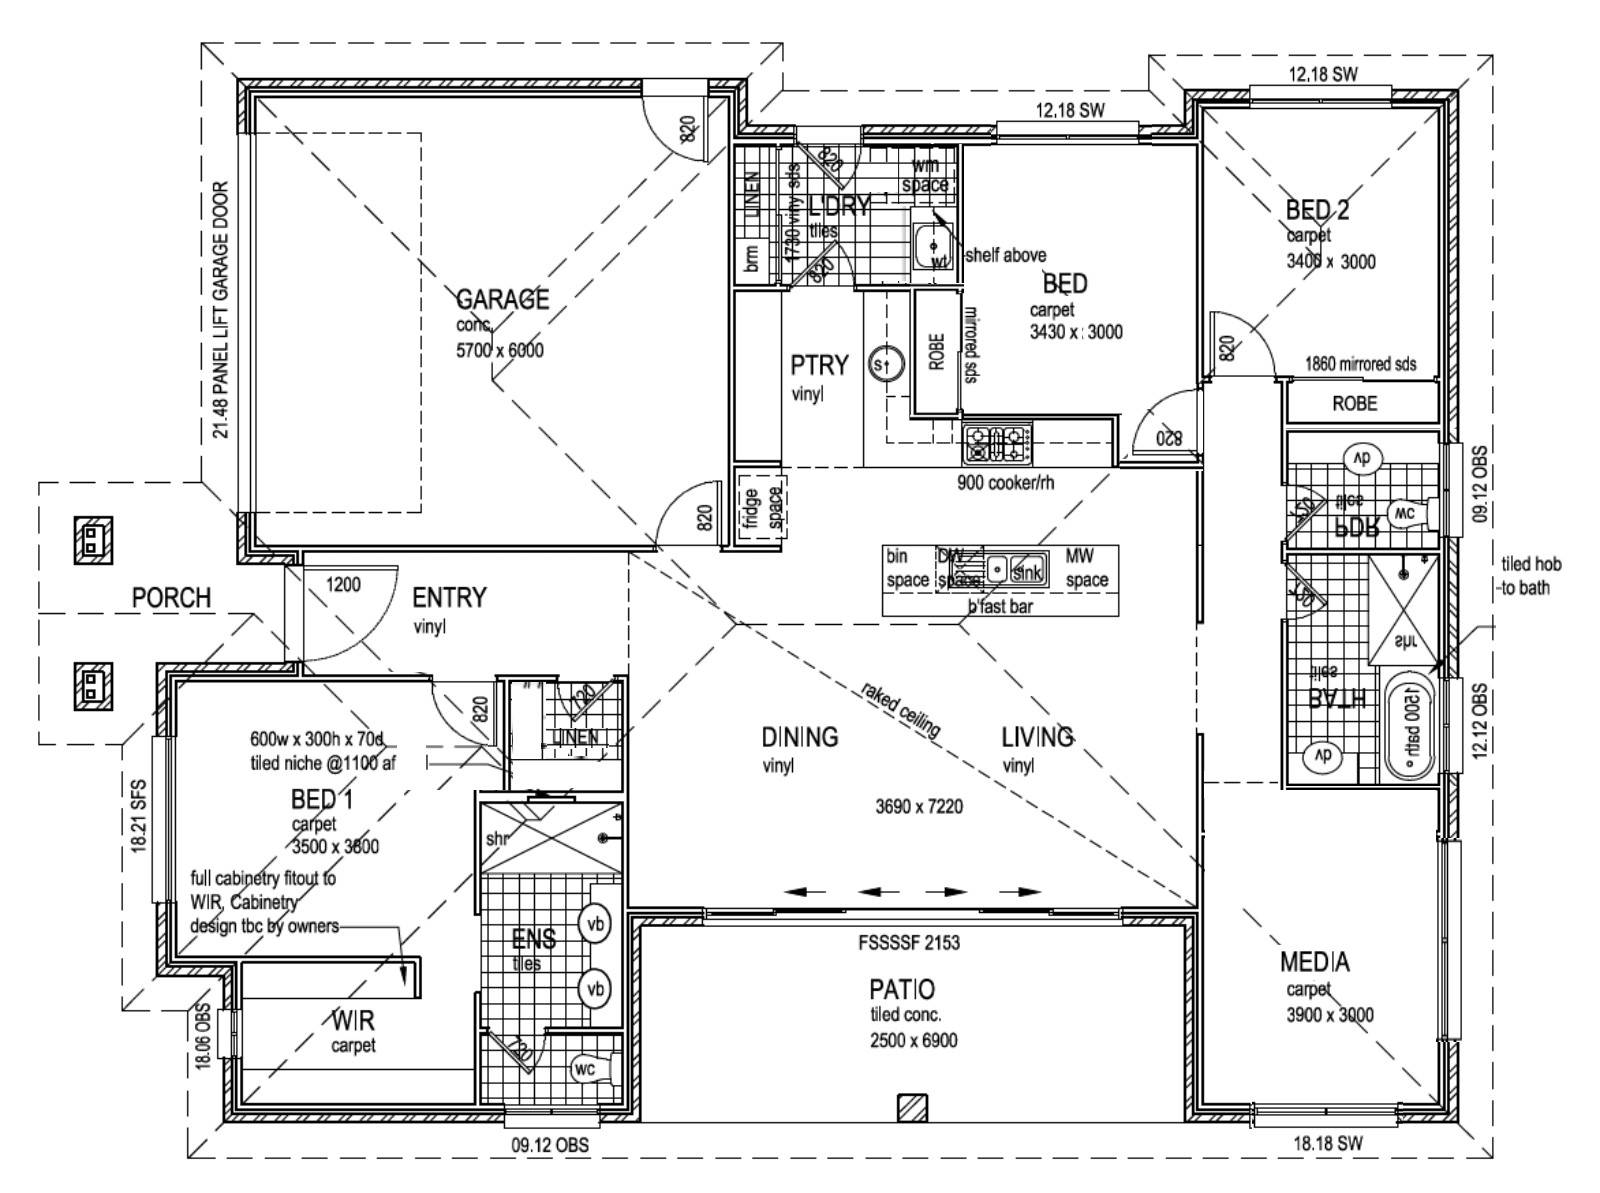 Floor Plan - Advice for Square Block